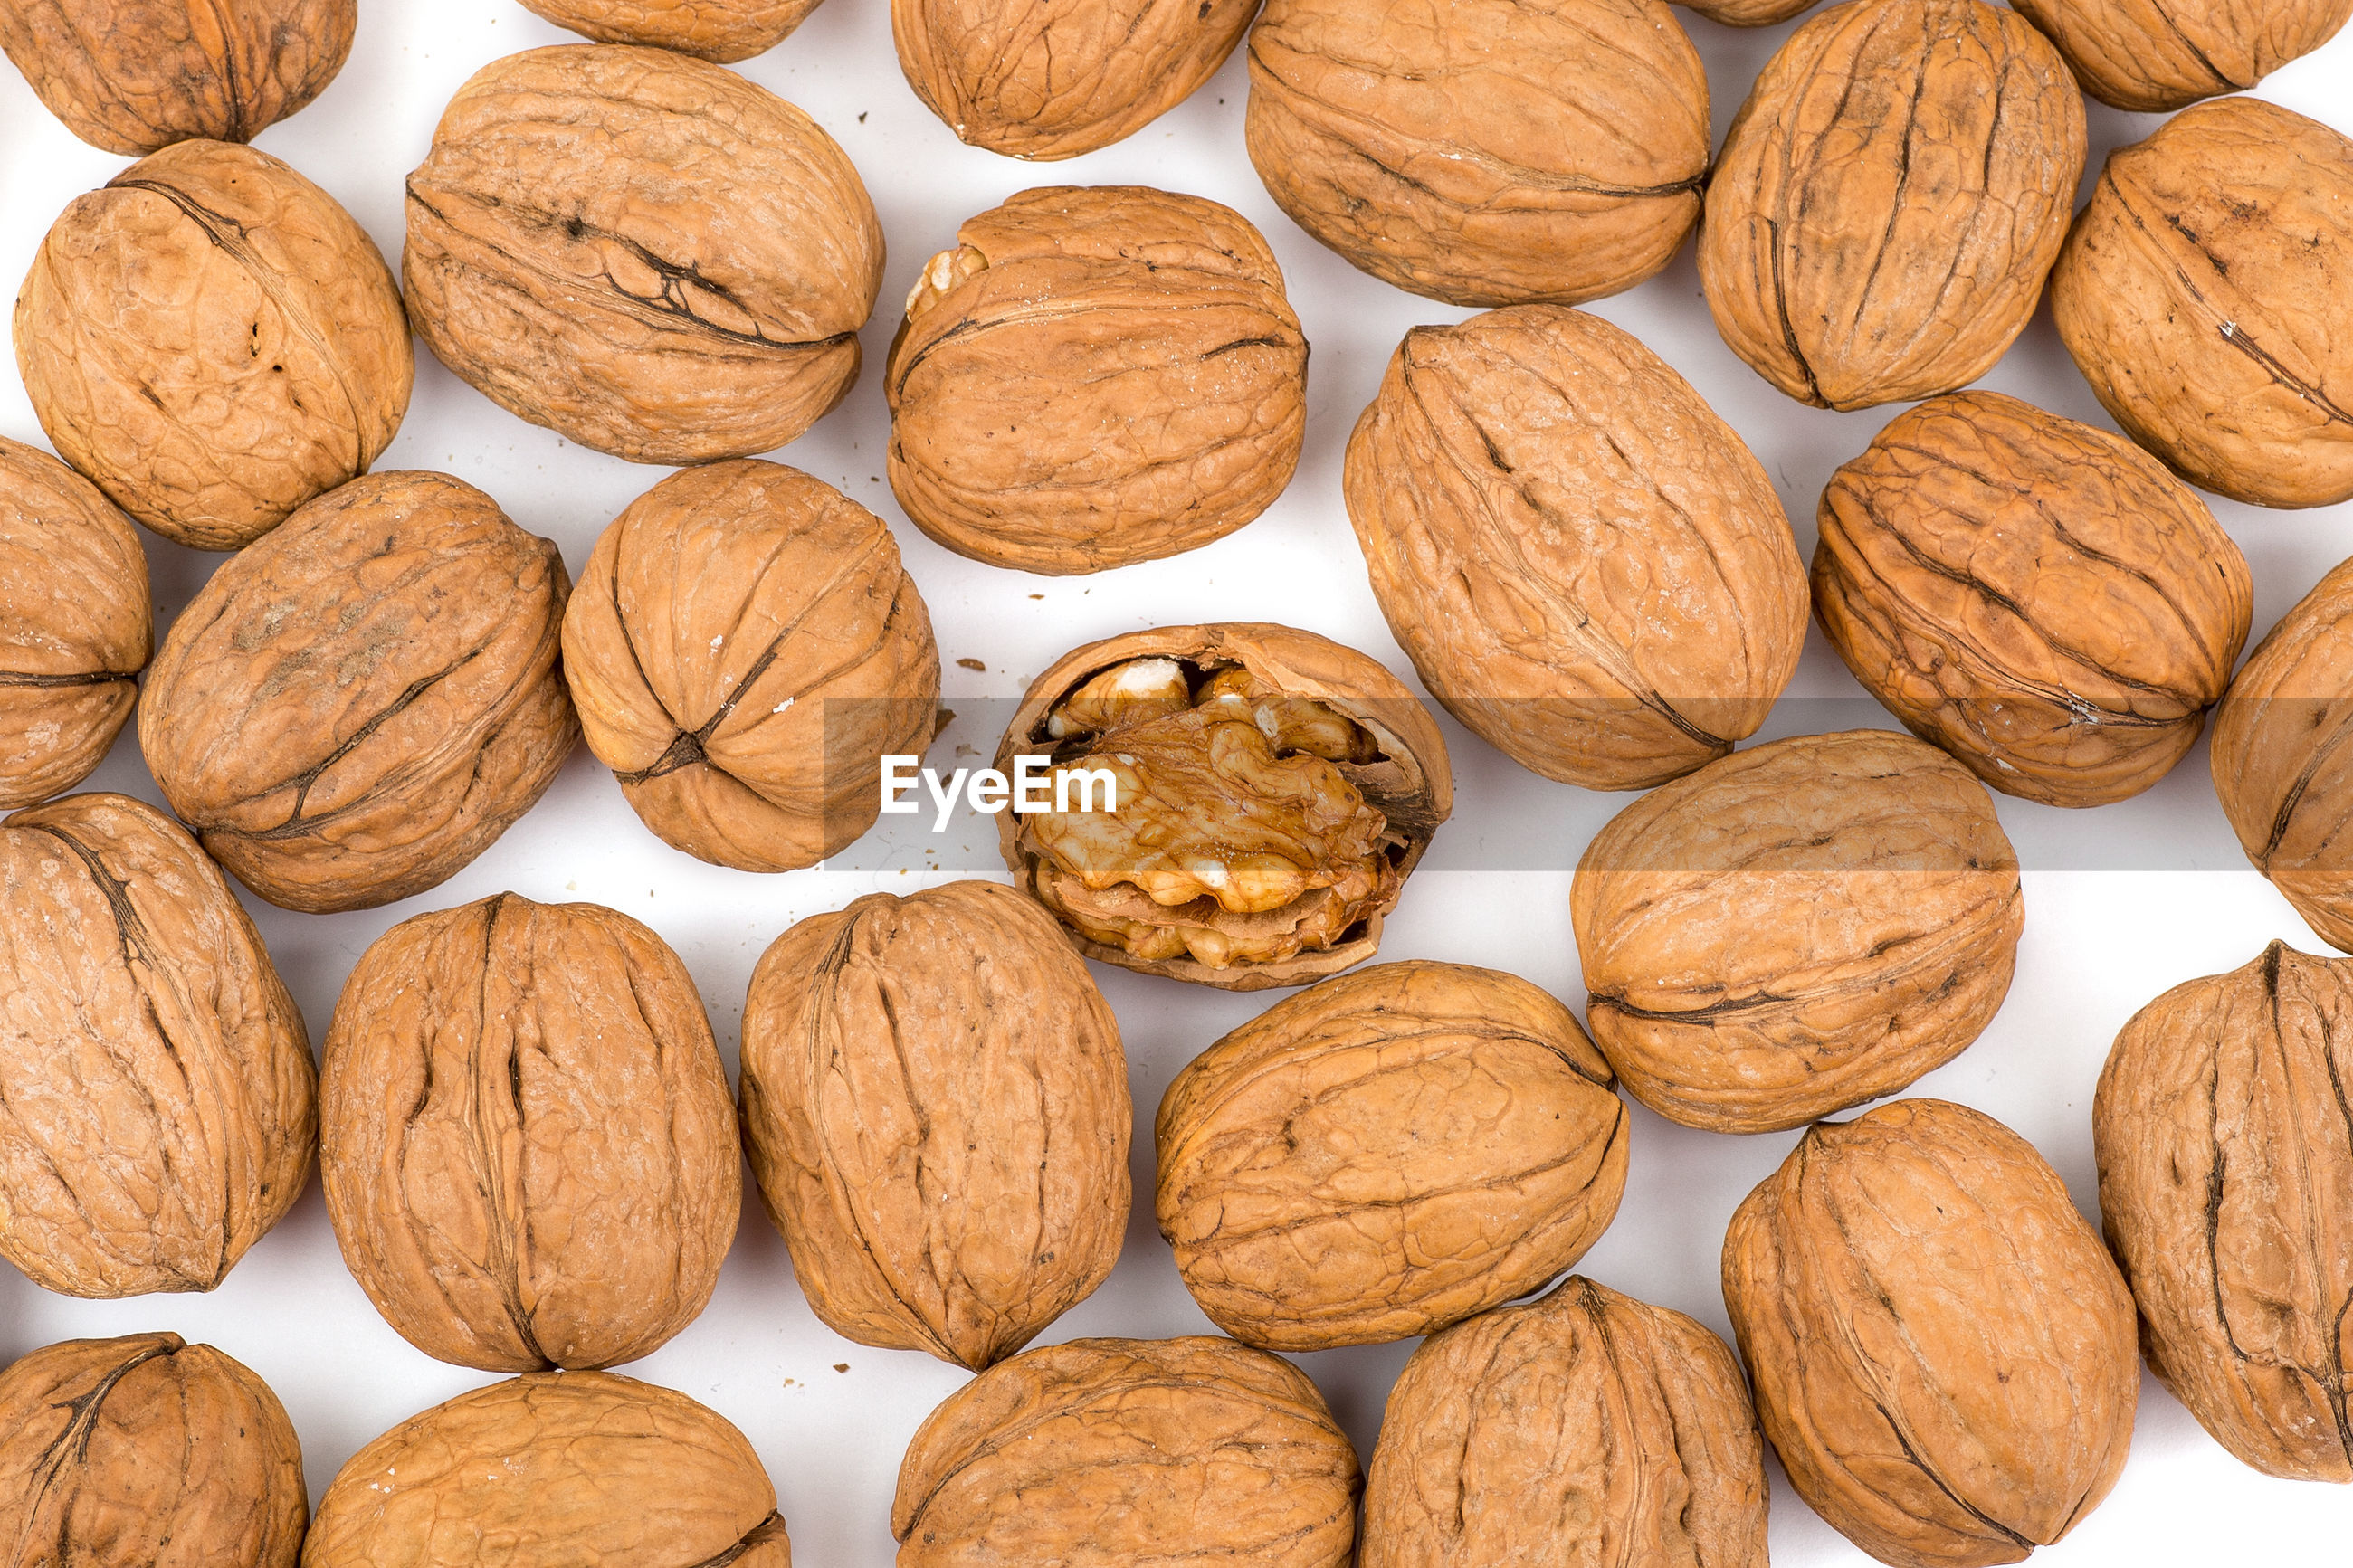 Full frame shot of walnuts on table